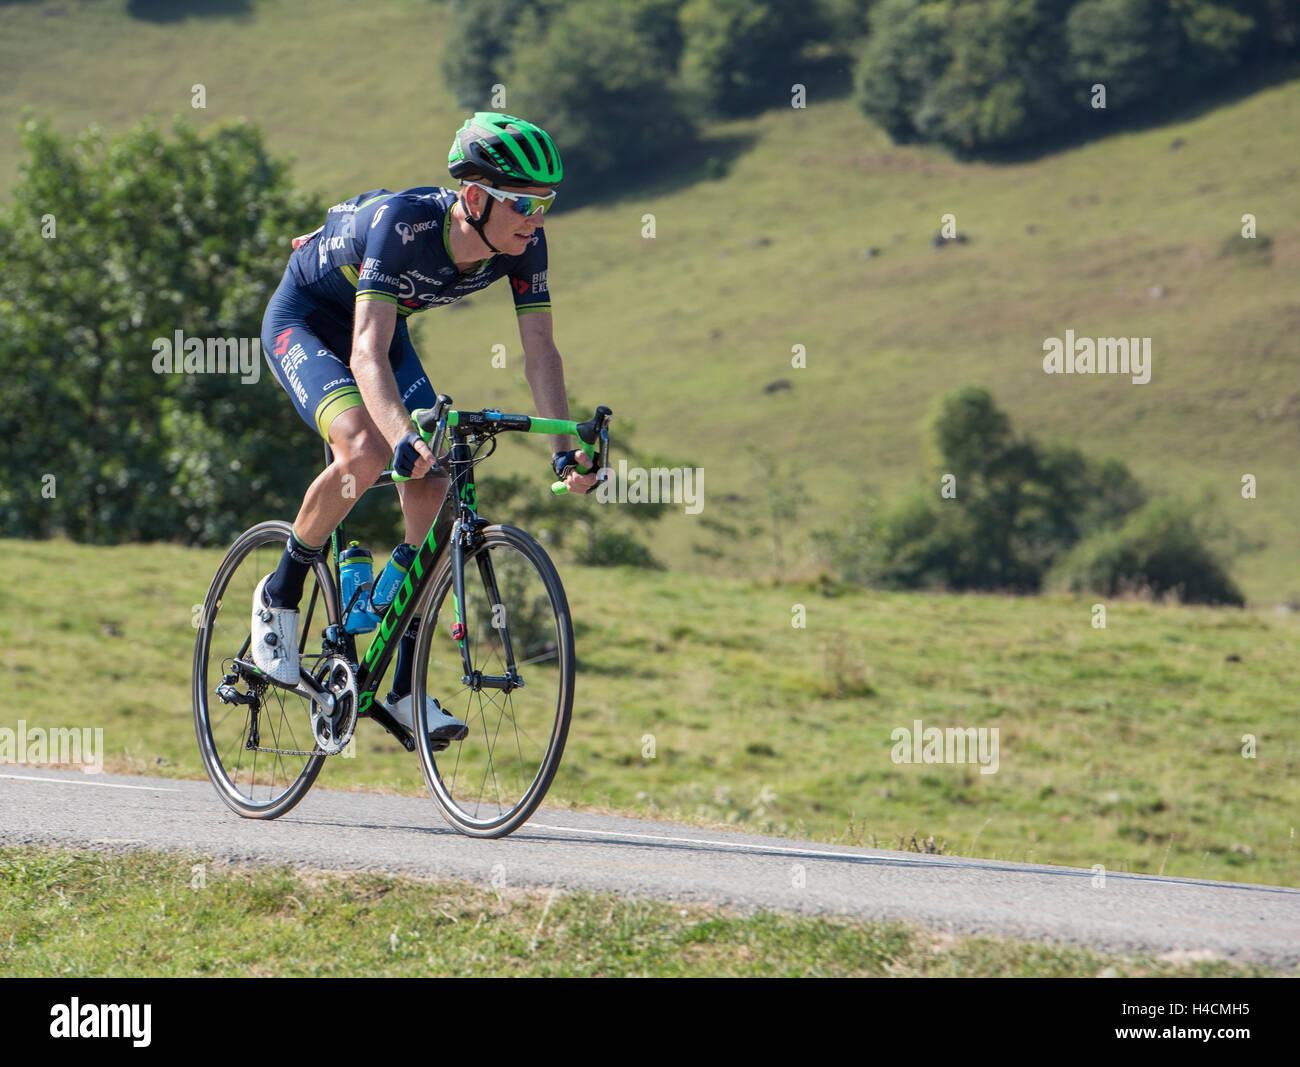 Jack Haig in la Vuelta Espagne on the Cole de Marie Blanque in the French Pyrenees. - Stock Image